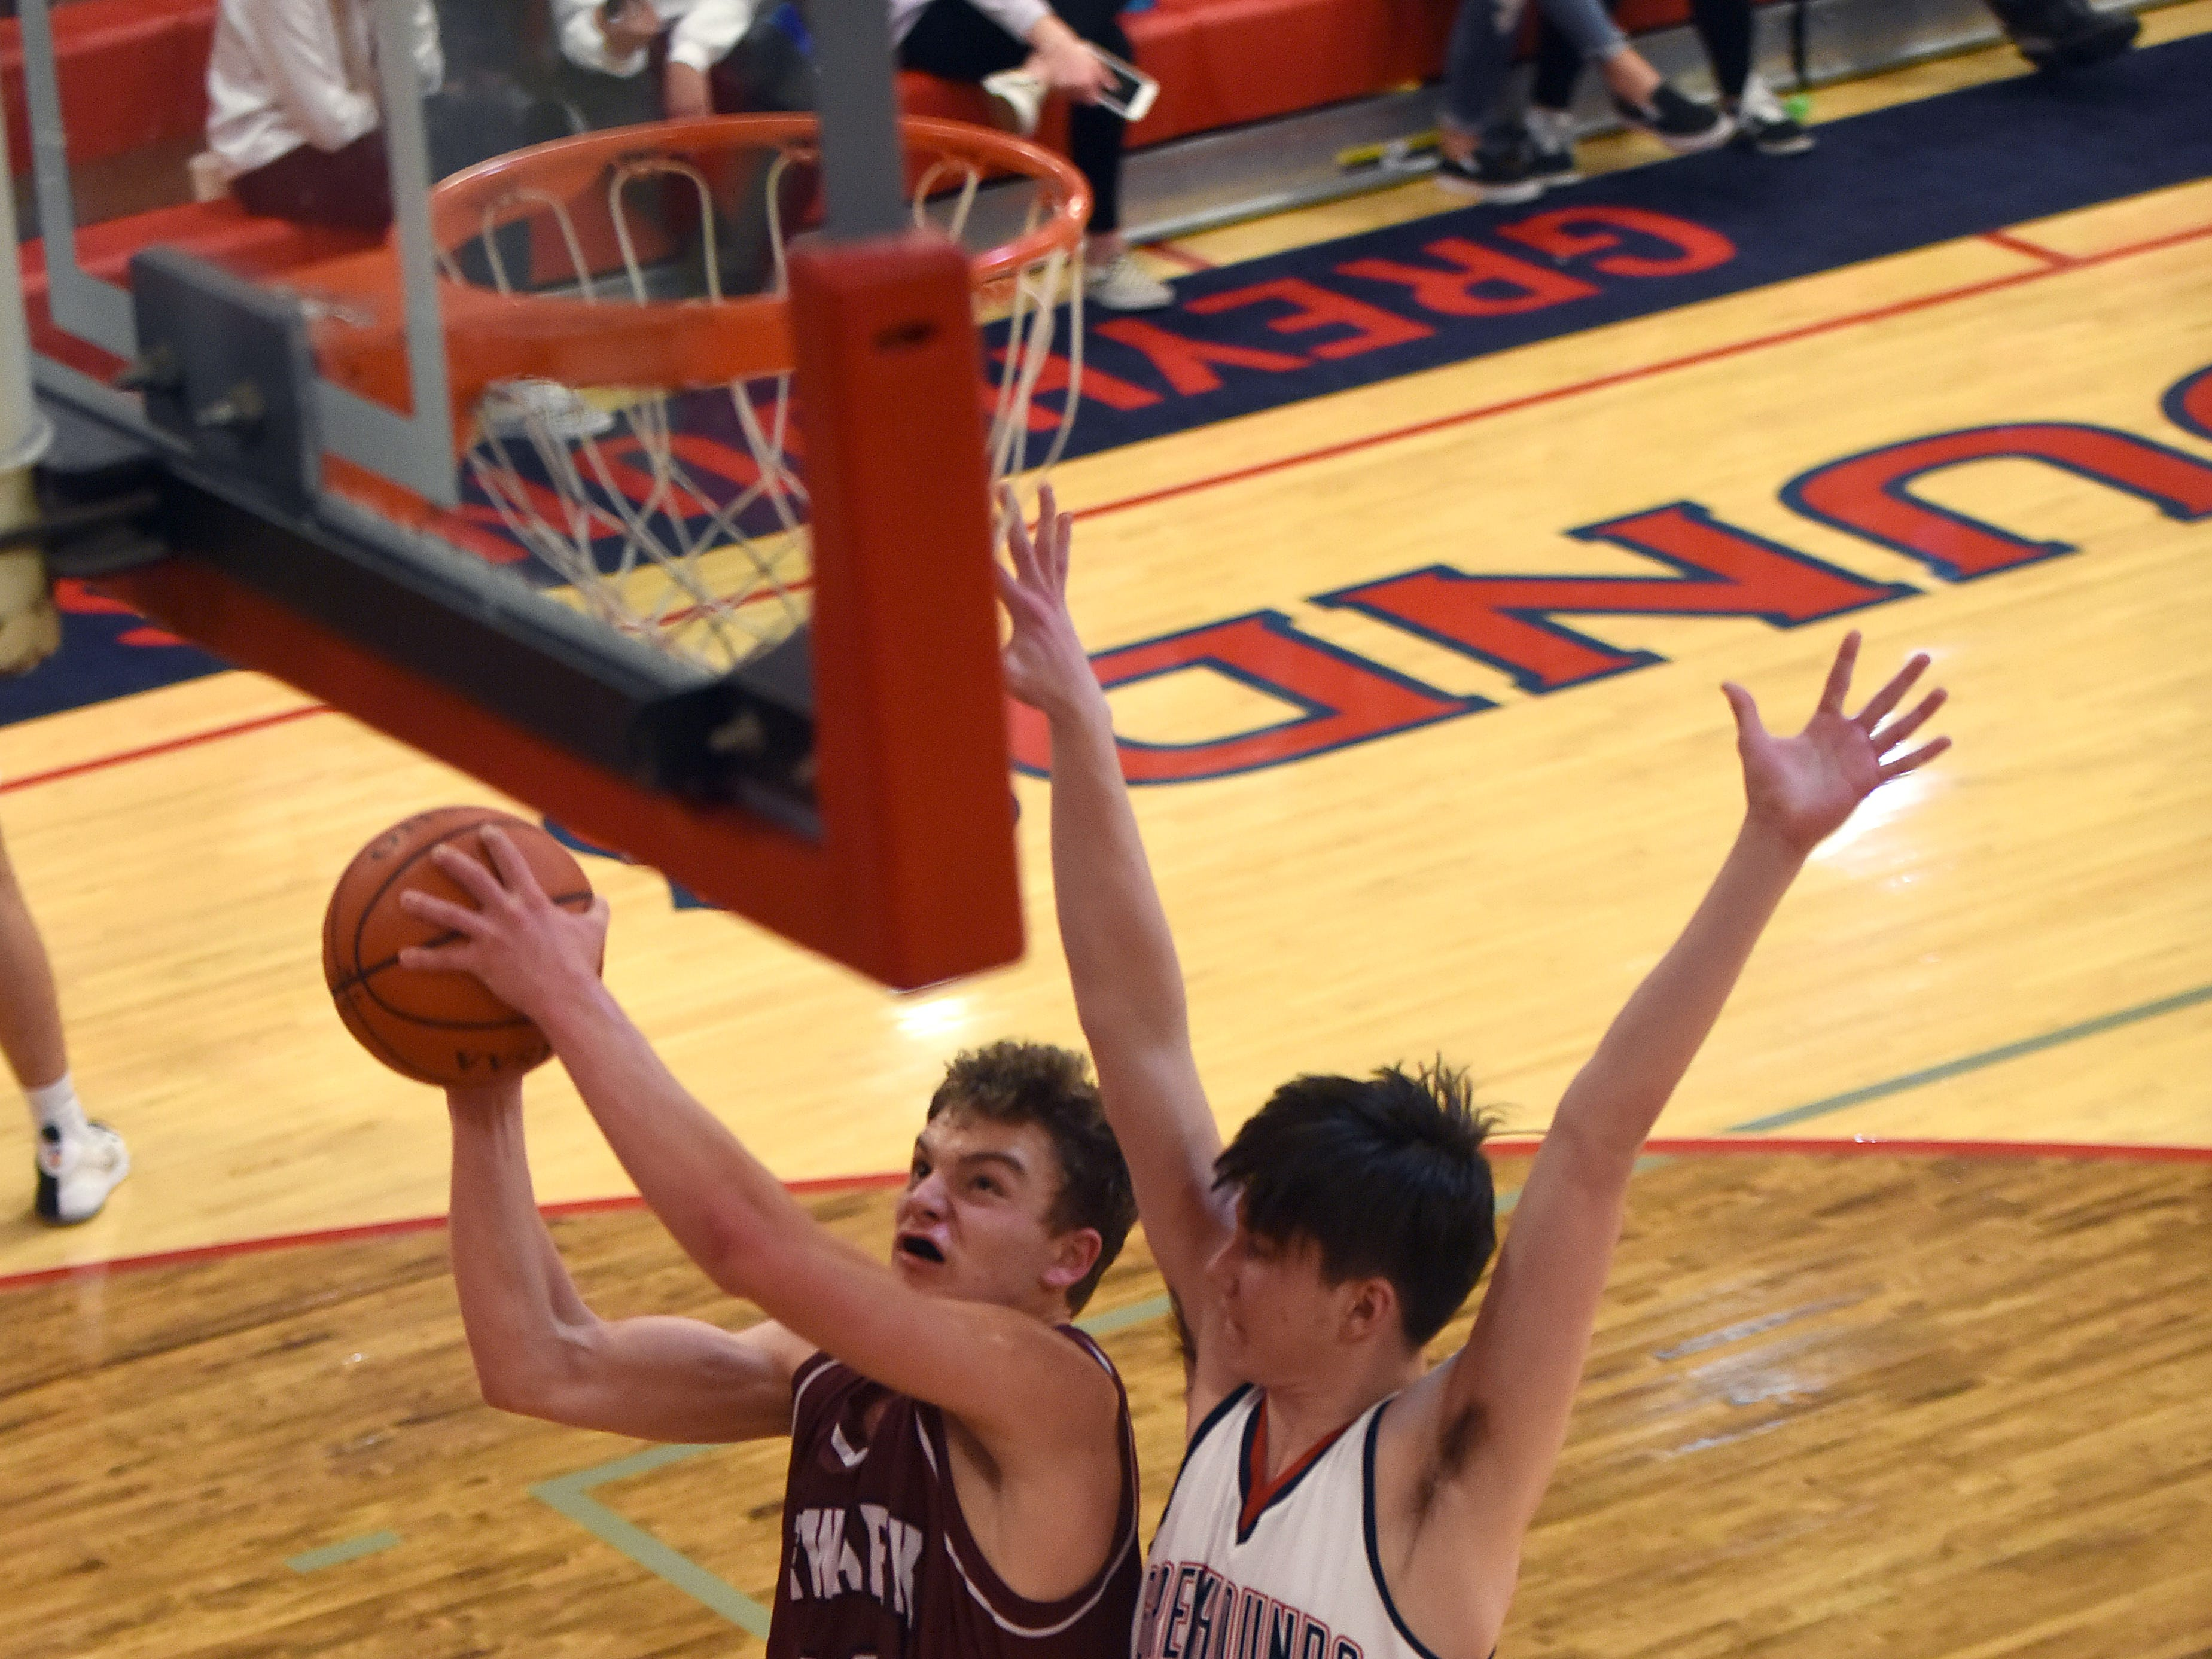 Newark sophomore Kade Bafford takes a shot against defense from Grove City sophomore Michael Hooffstetter during Tuesday night's game at Grove City. The Wildcats won 61-47 on the road.